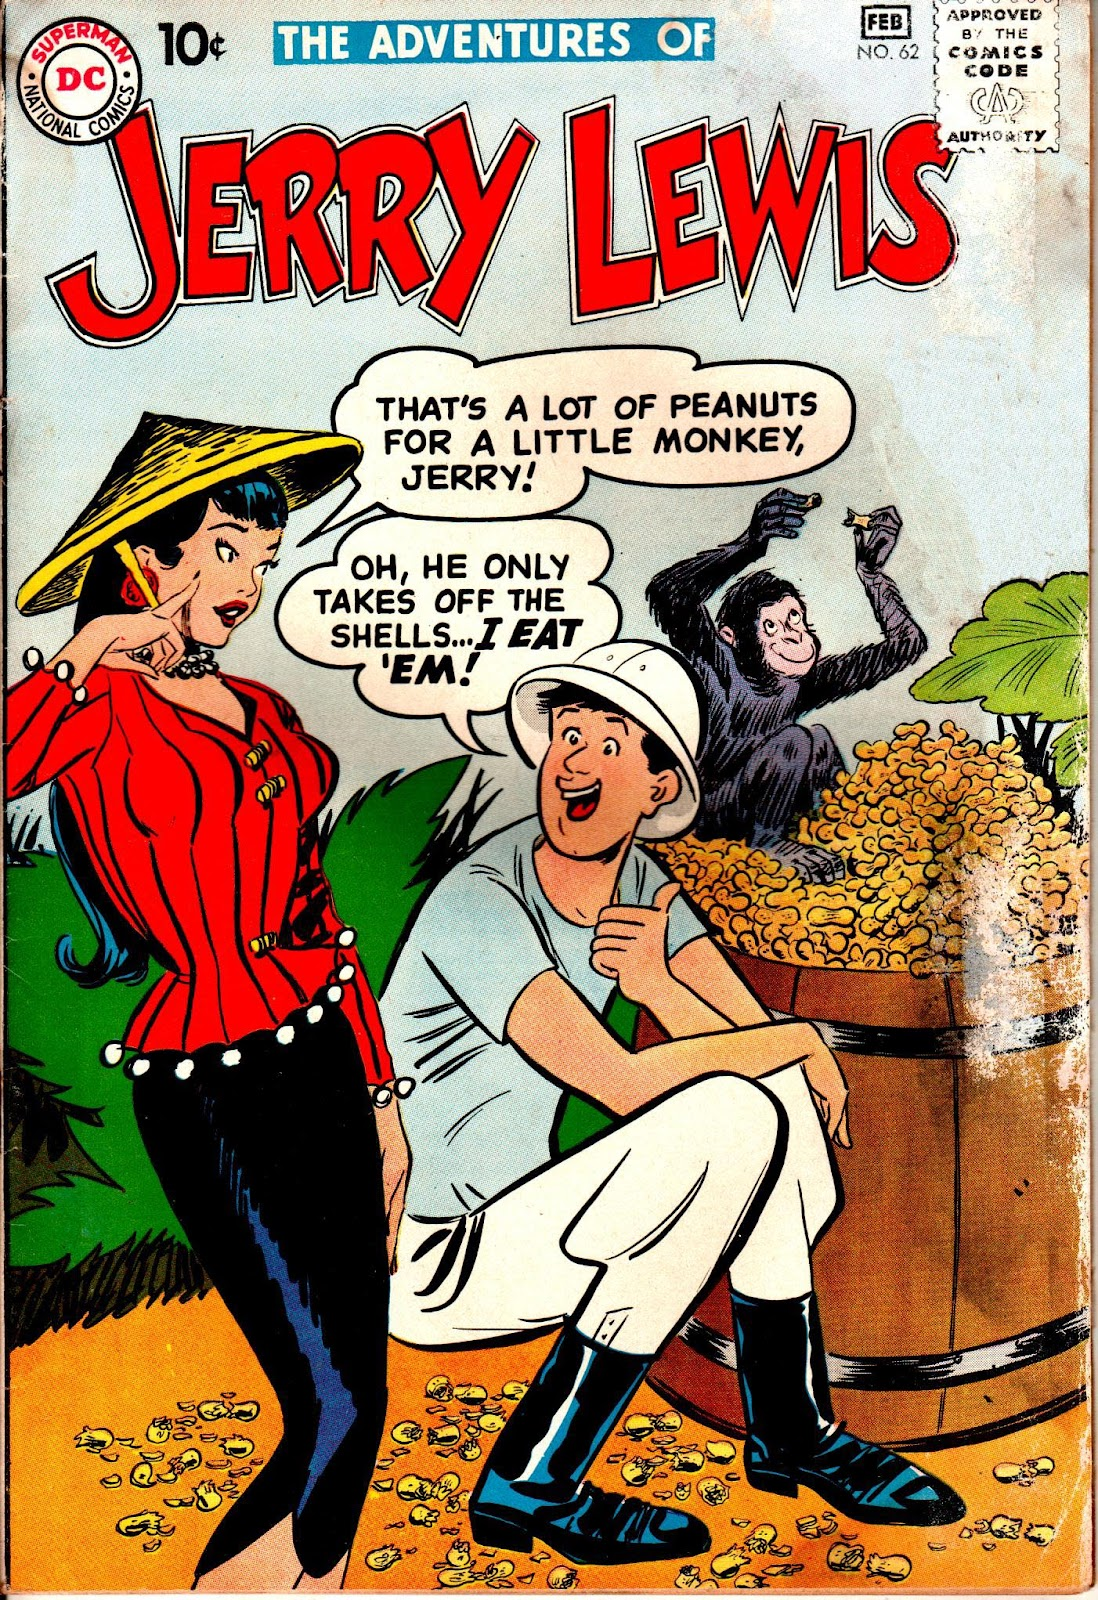 The Adventures of Jerry Lewis 62 Page 1